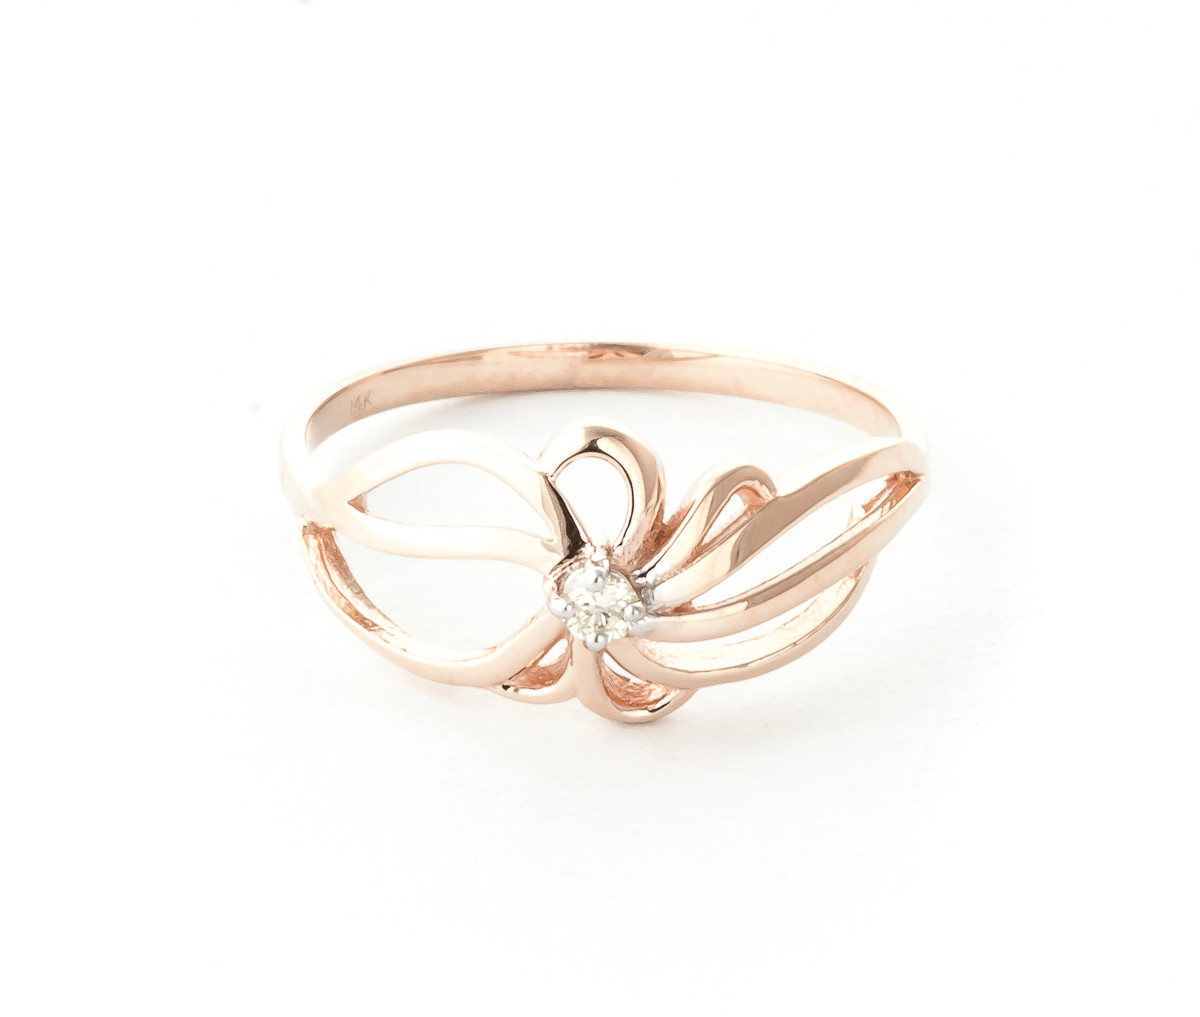 Round Cut Diamond Ring 0.05 ct in 9ct Rose Gold